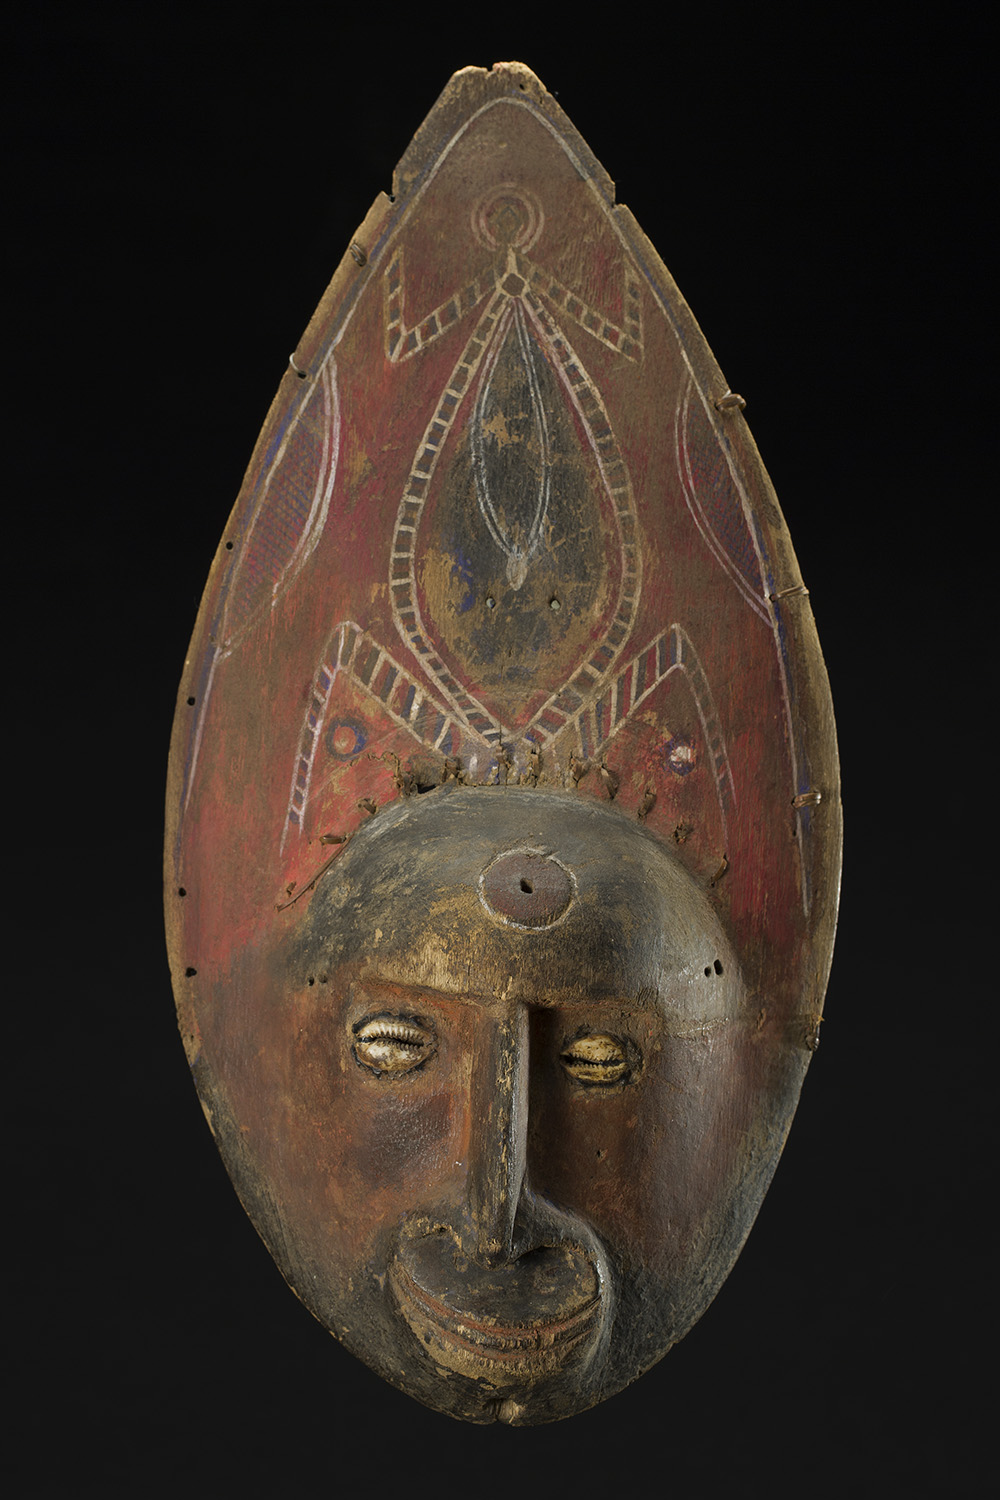 Yam Mask, Abelam People, Wosera Subgroup, East Sepik Province, PNG, Ex: Michael Hamson, Jolika Collection, John and Marcia Friede, Early 20th C. Wood, shells, and pigment 16 x 8 x 3 inches 40.6 x 20.3 x 7.6 cm w/ stand: 19.5 x 8 x 4.5 inches M 265s